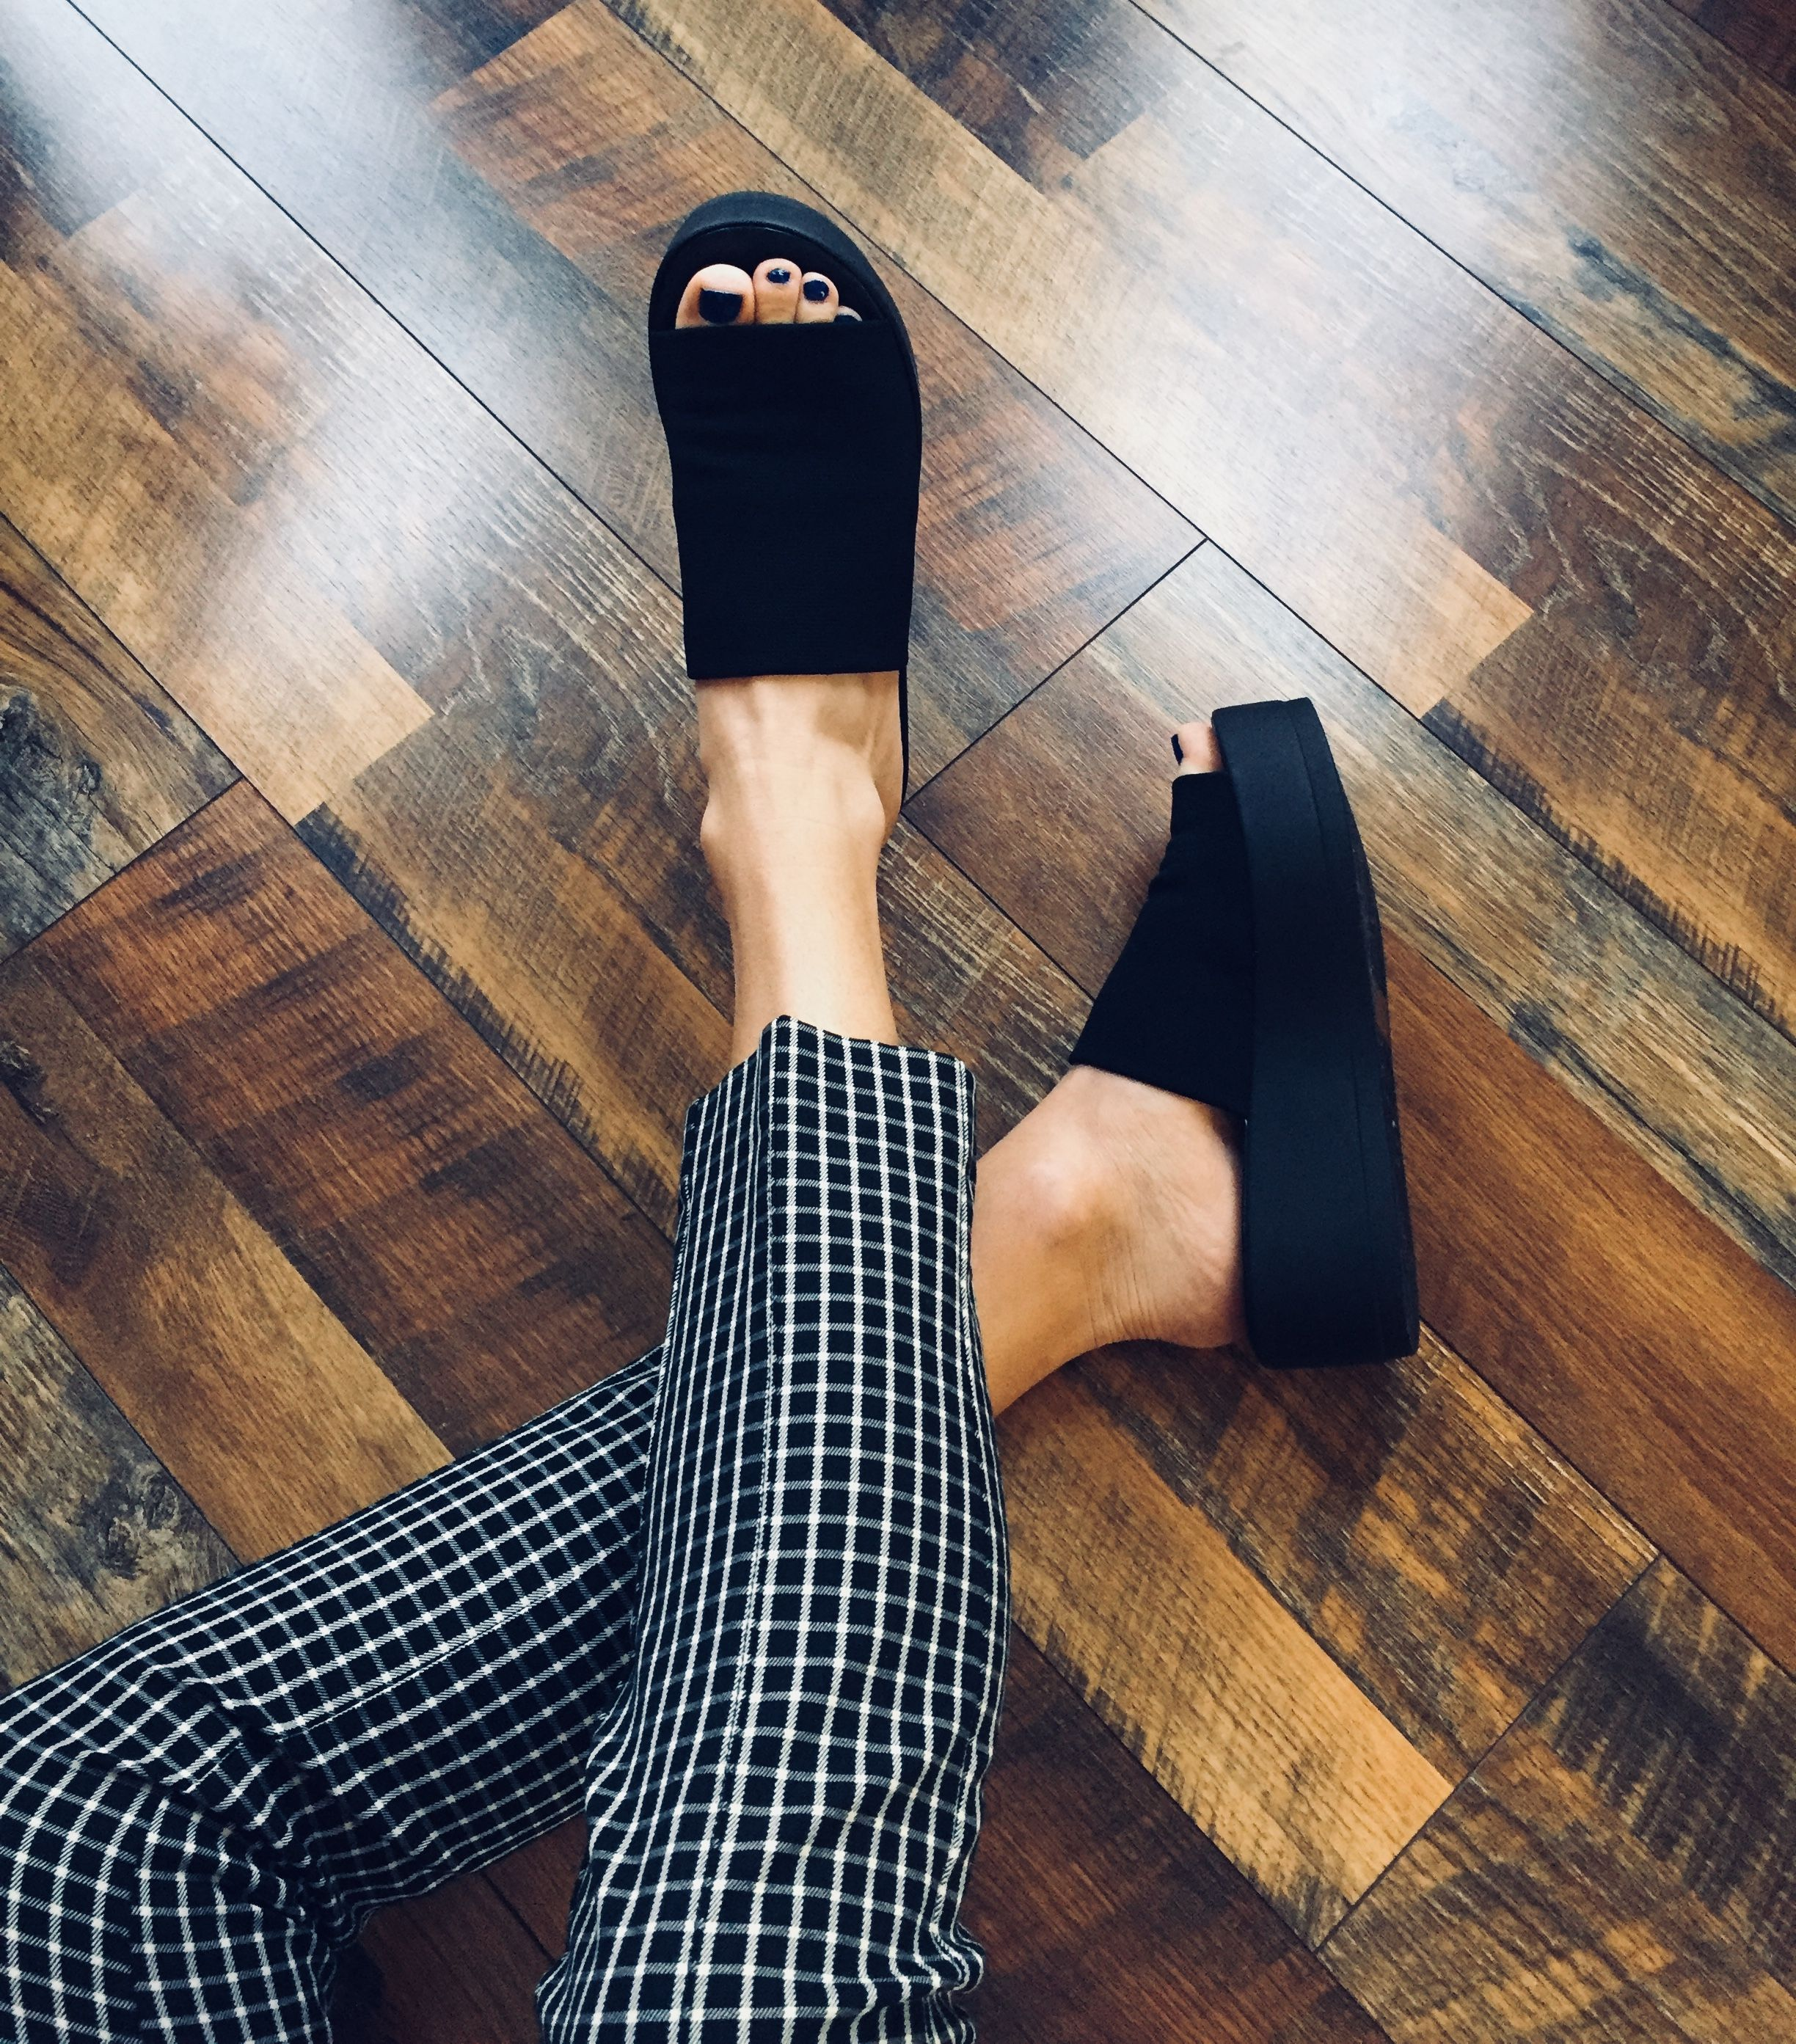 01b526066a2 Whoever said the 90s were dead was totally buggin   asif ⋆ Steve Madden s  Slinky Sandals